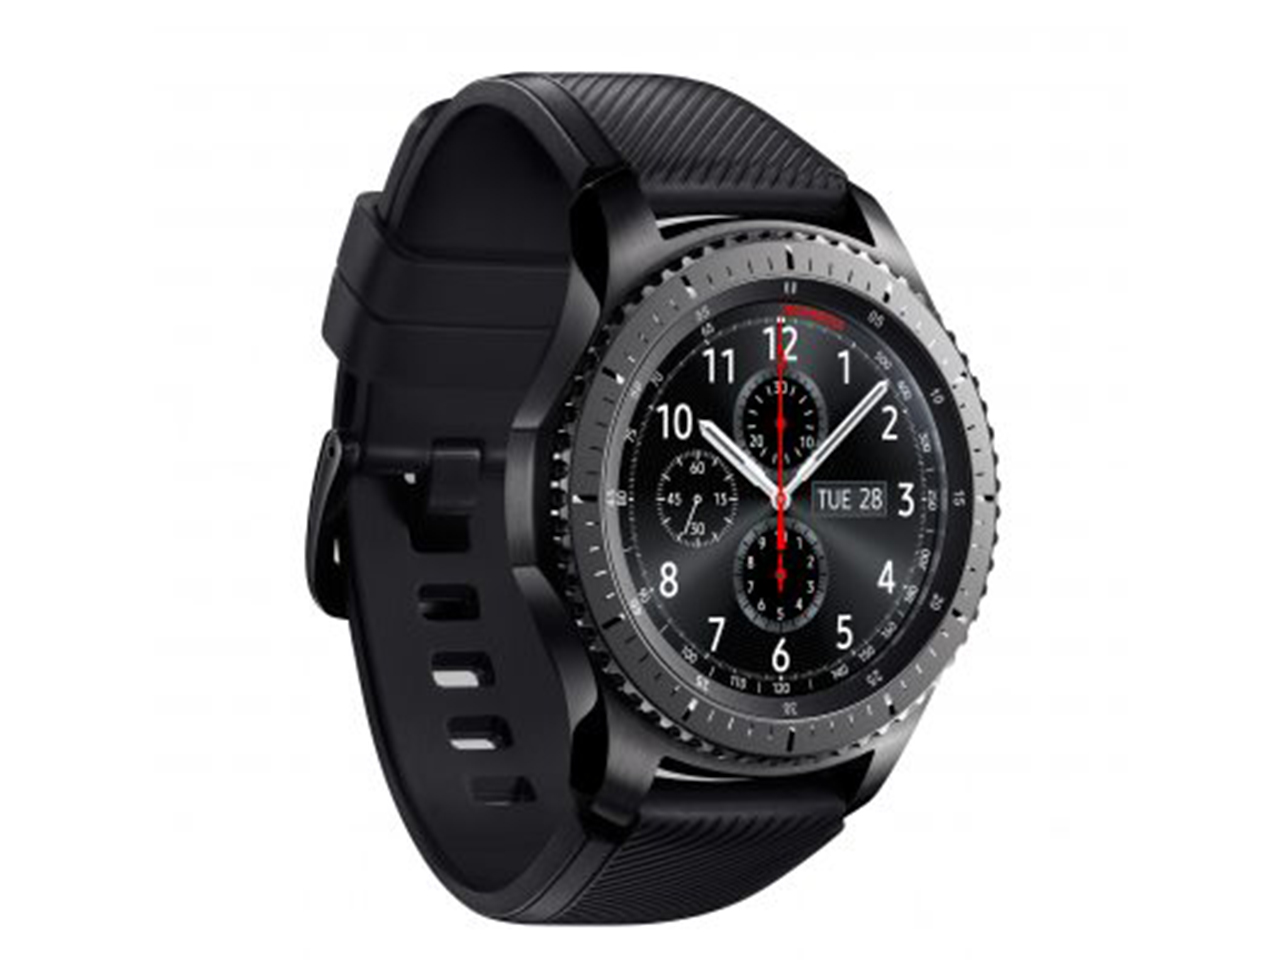 rug ablogtowatch android wsd smartwatch casio wear review rugged